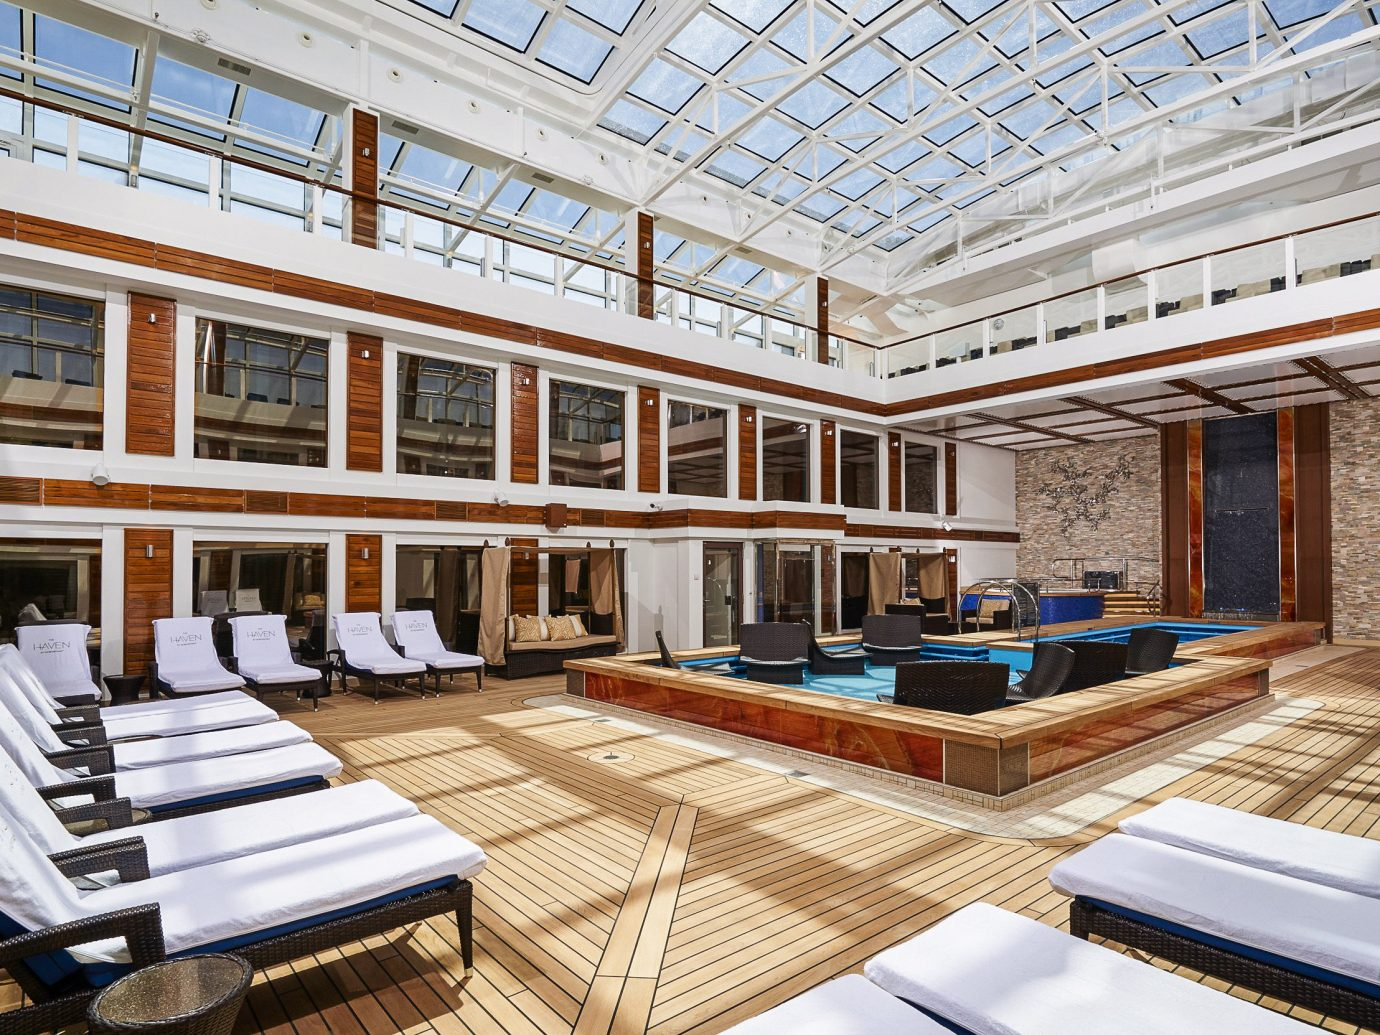 Cruise Travel Luxury Travel Trip Ideas indoor interior design daylighting real estate estate window roof apartment Lobby building furniture